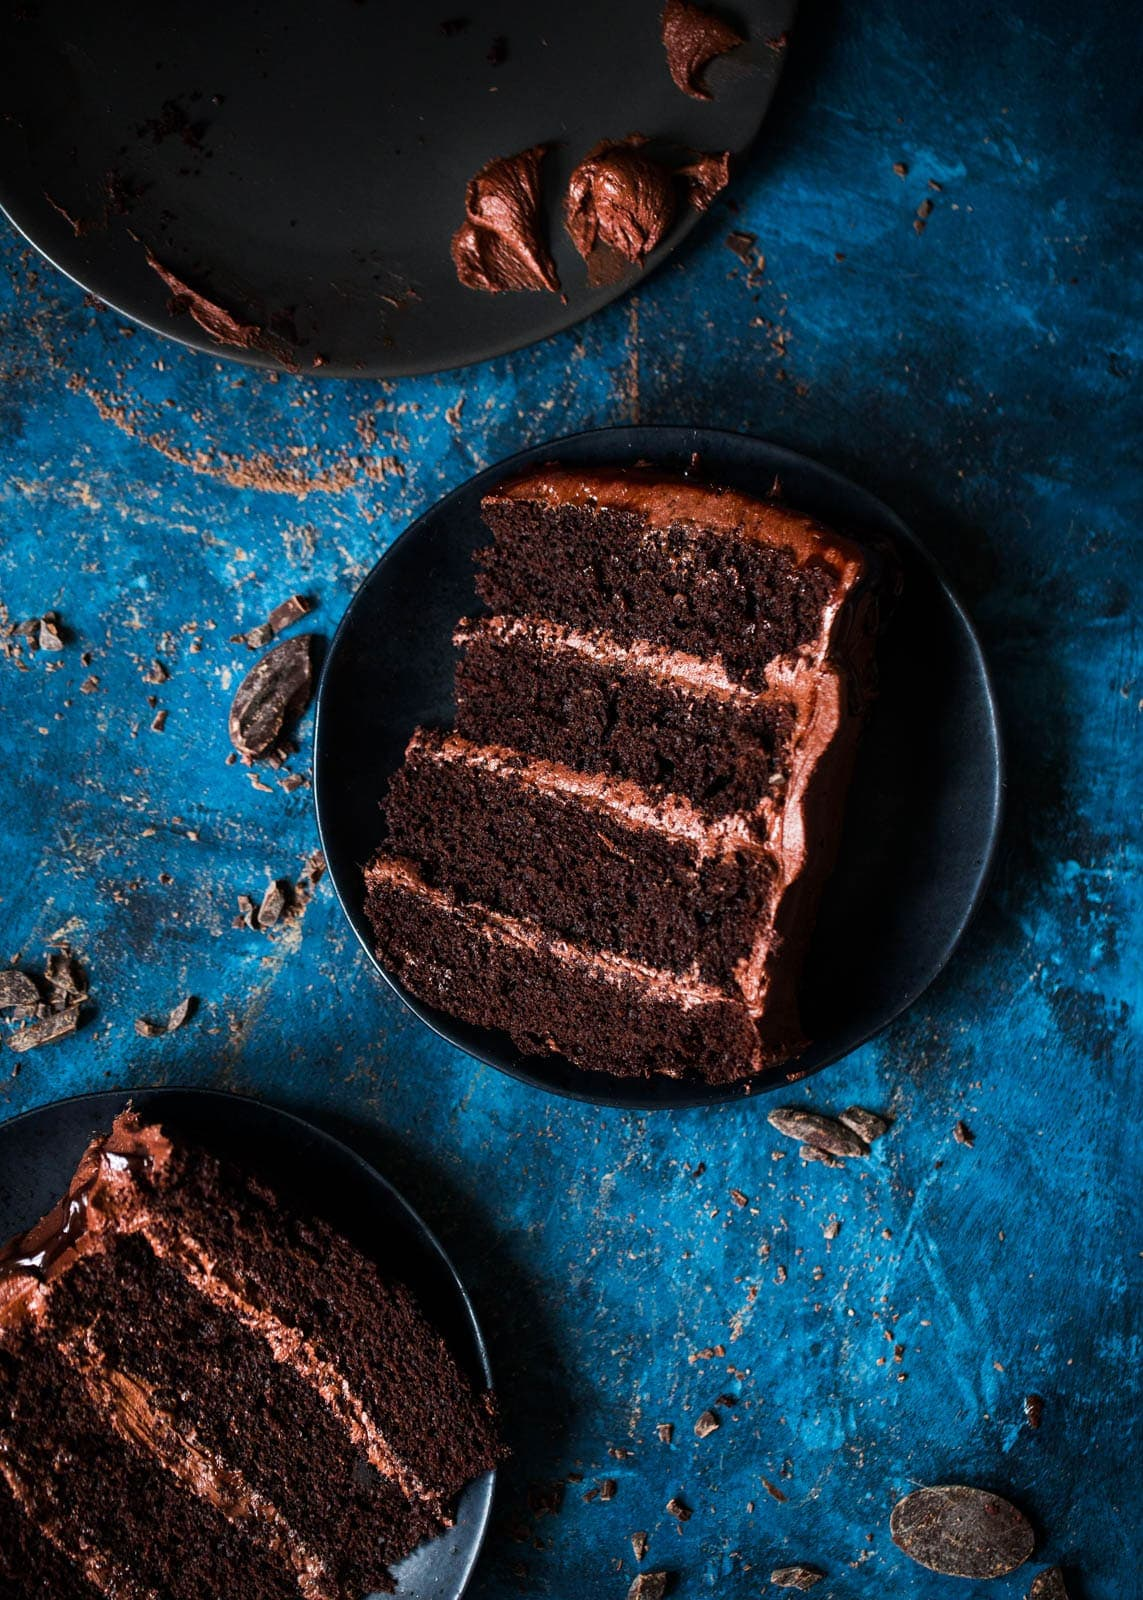 slices of Chocolate Mocha Cake on plates